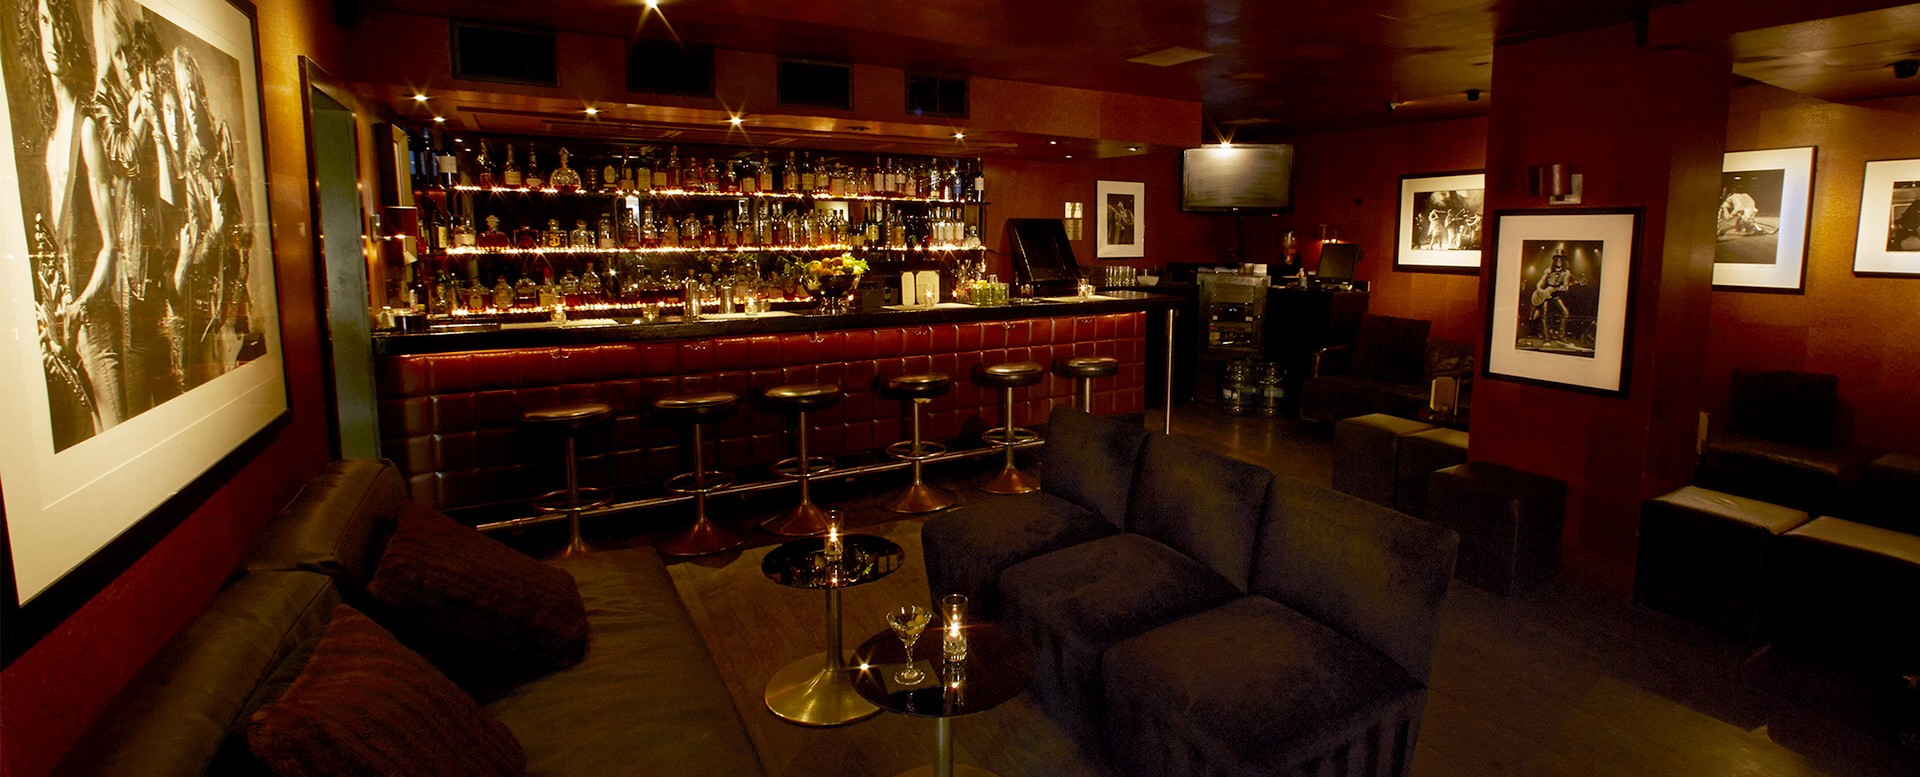 Sunset Marquis Hotel - Bar 1200